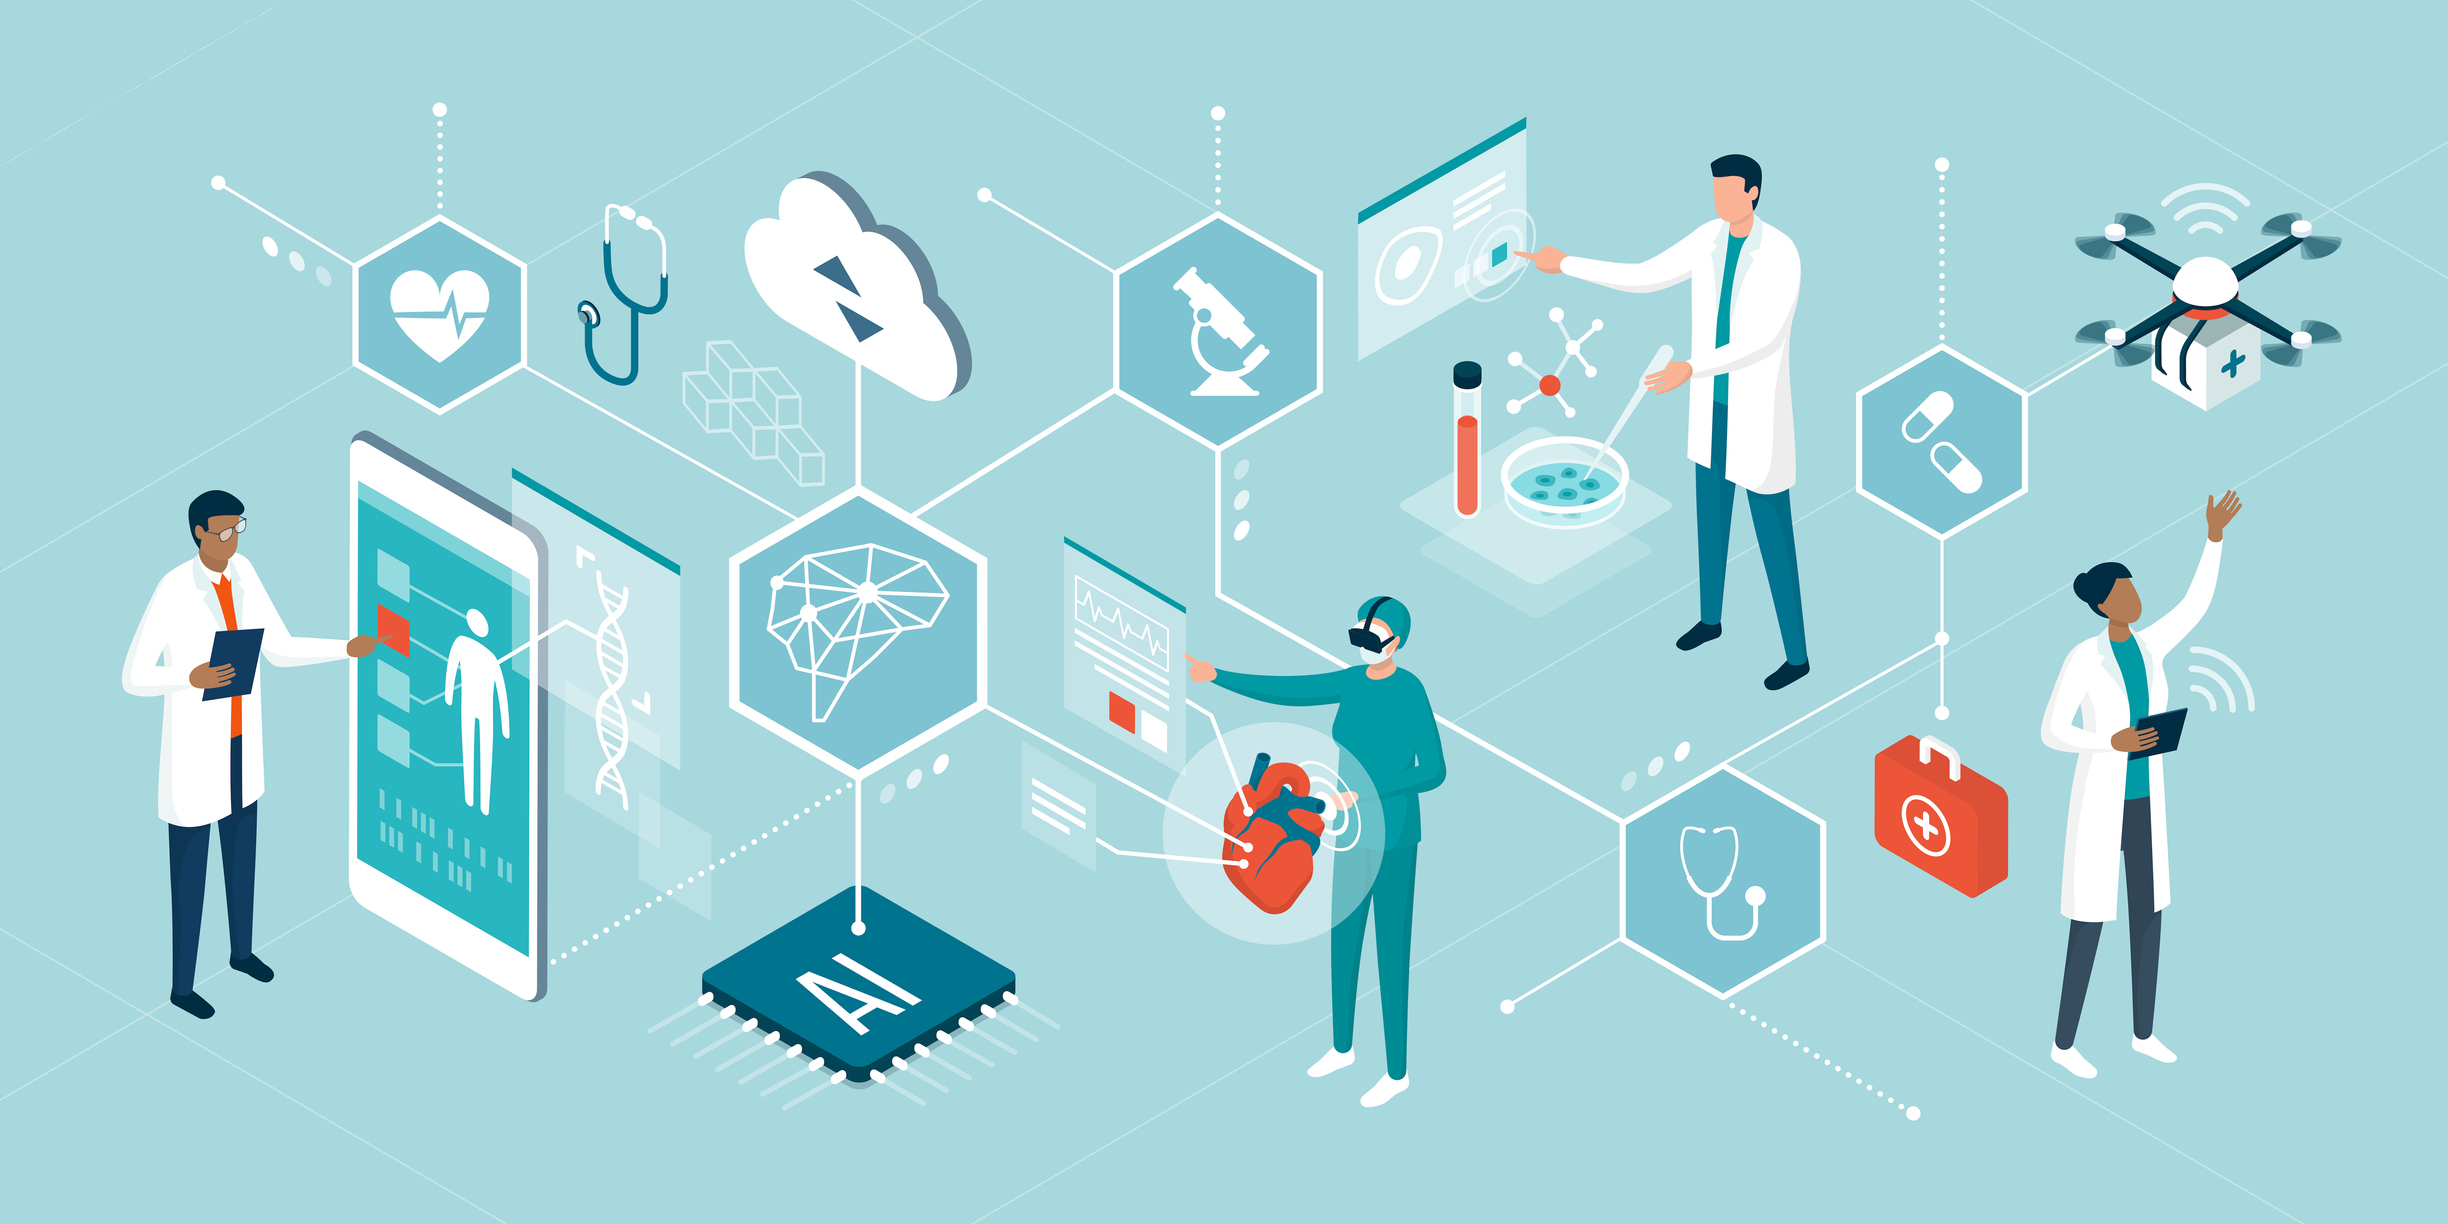 3 Opportunities for Pre-Competitive Collaboration in Digital Health